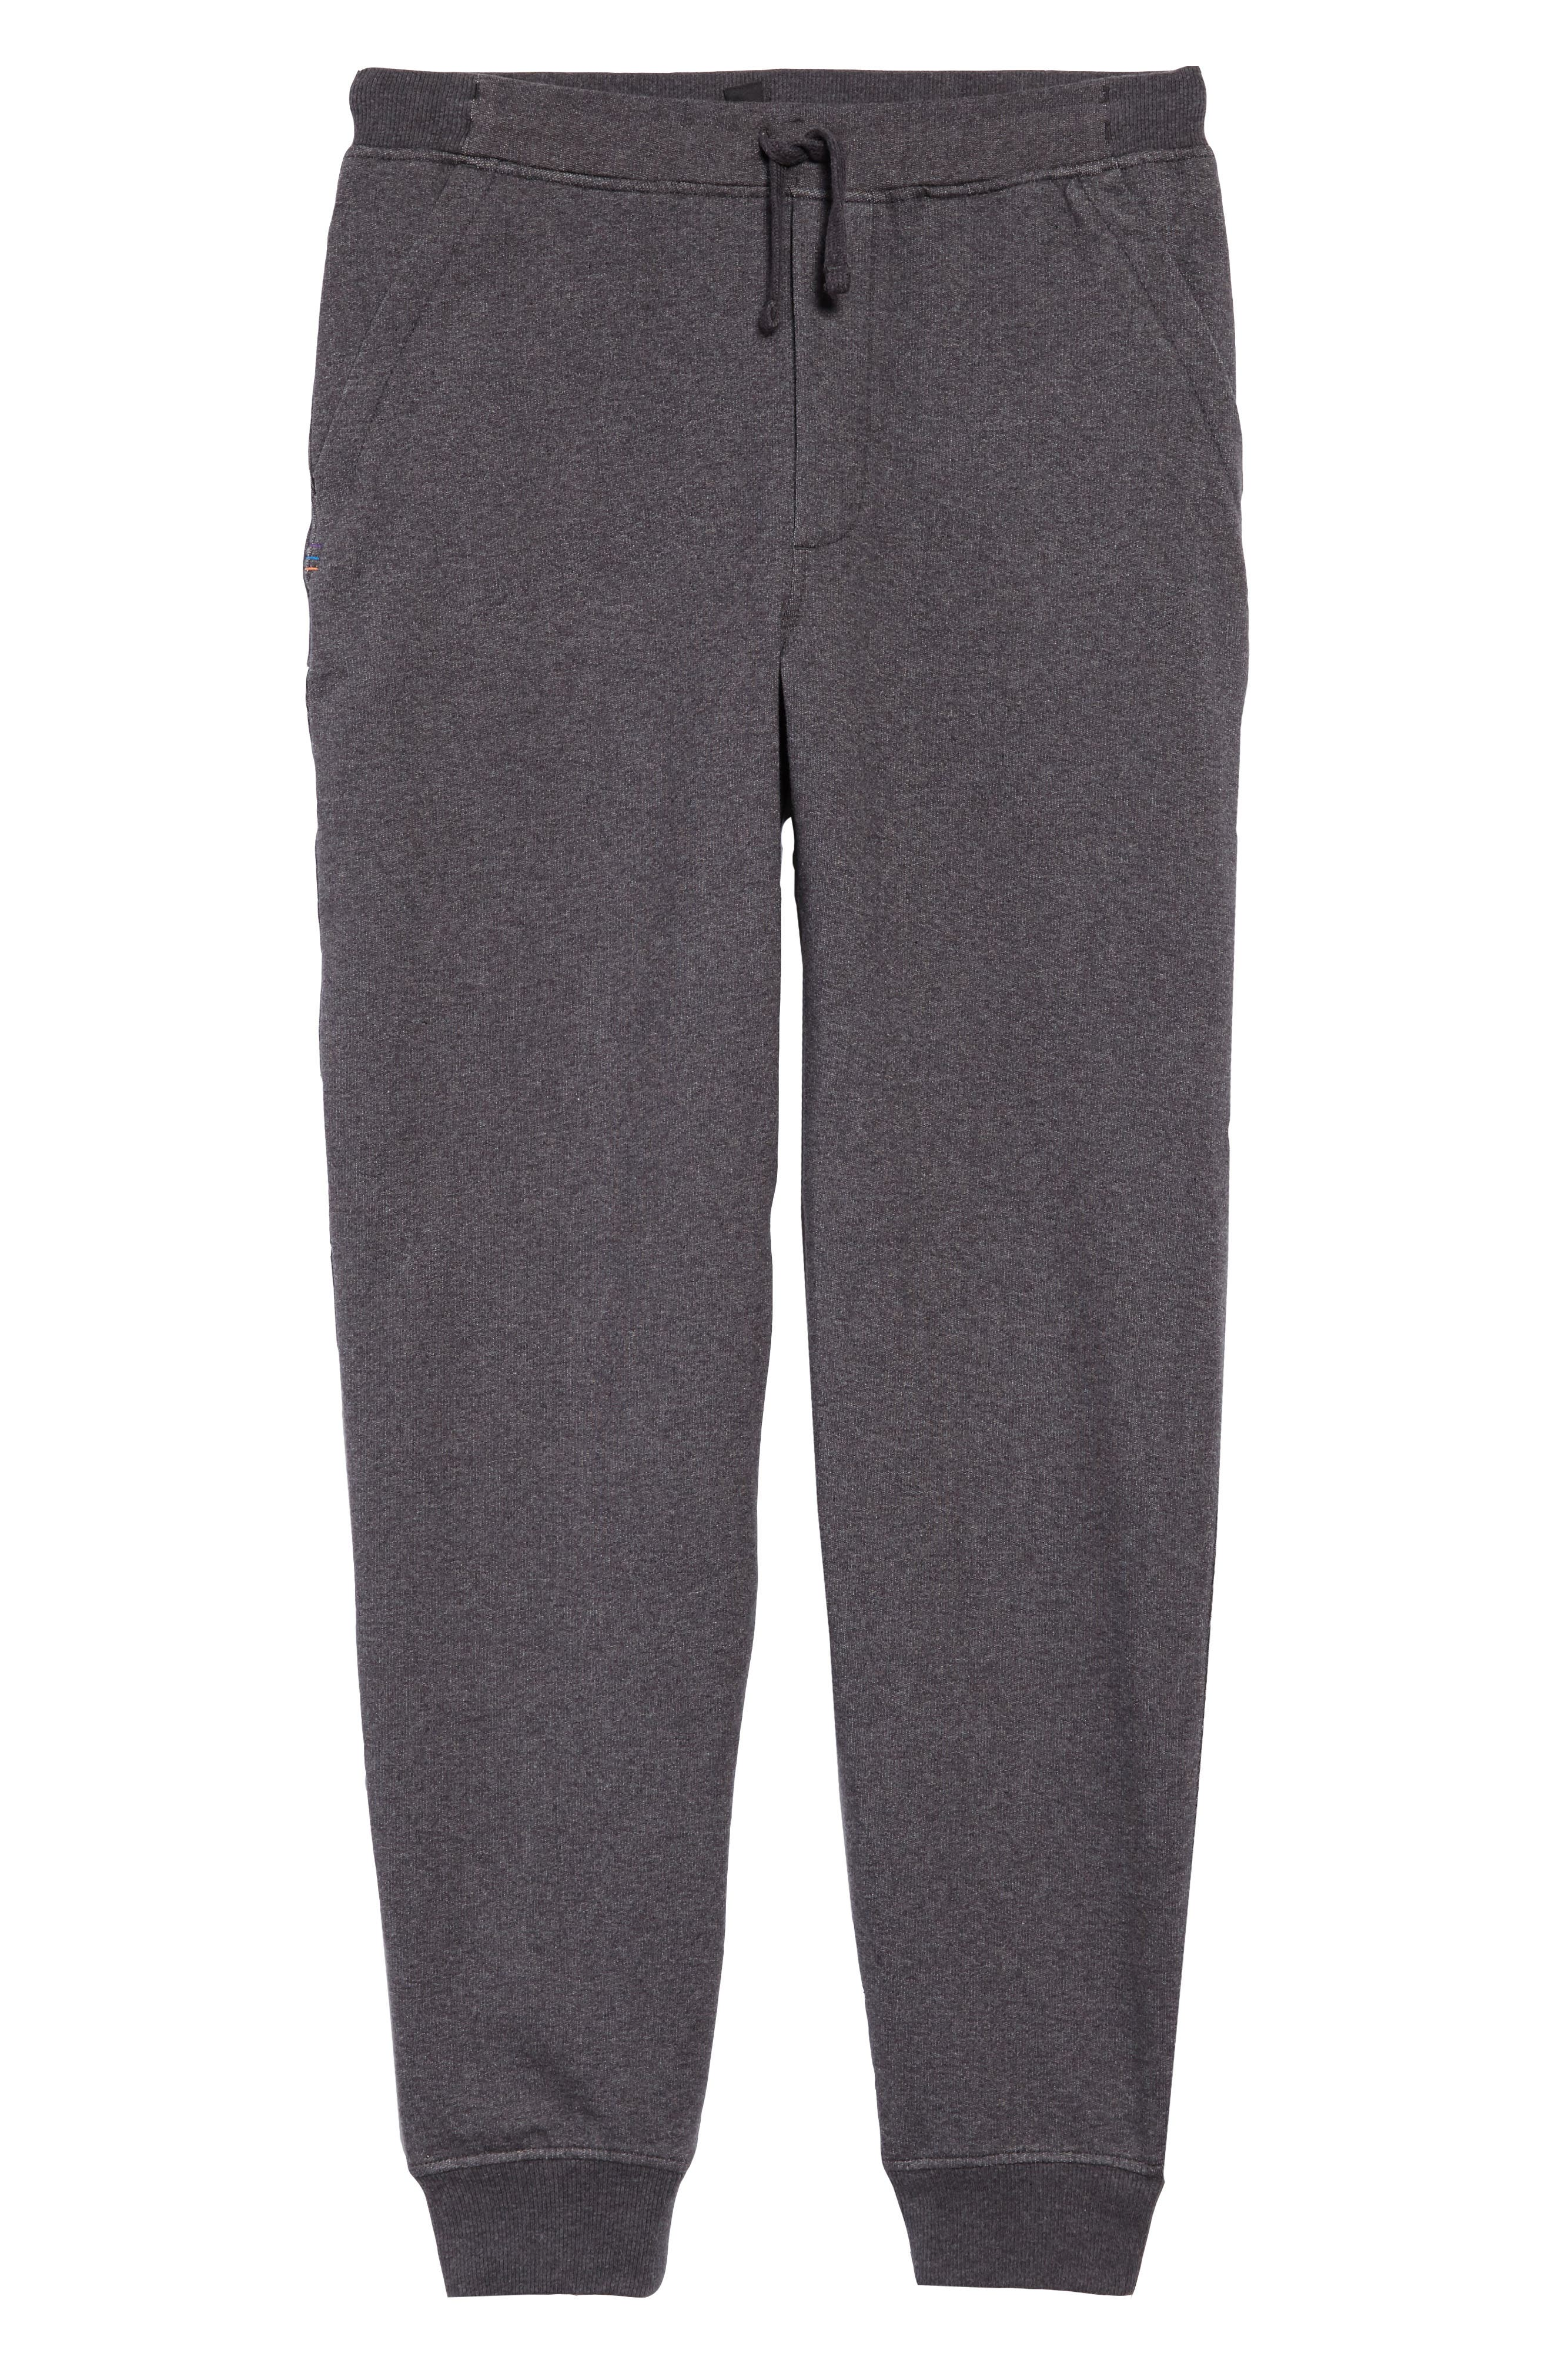 M's Mahnya Fleece Jogger Pants,                             Alternate thumbnail 6, color,                             020